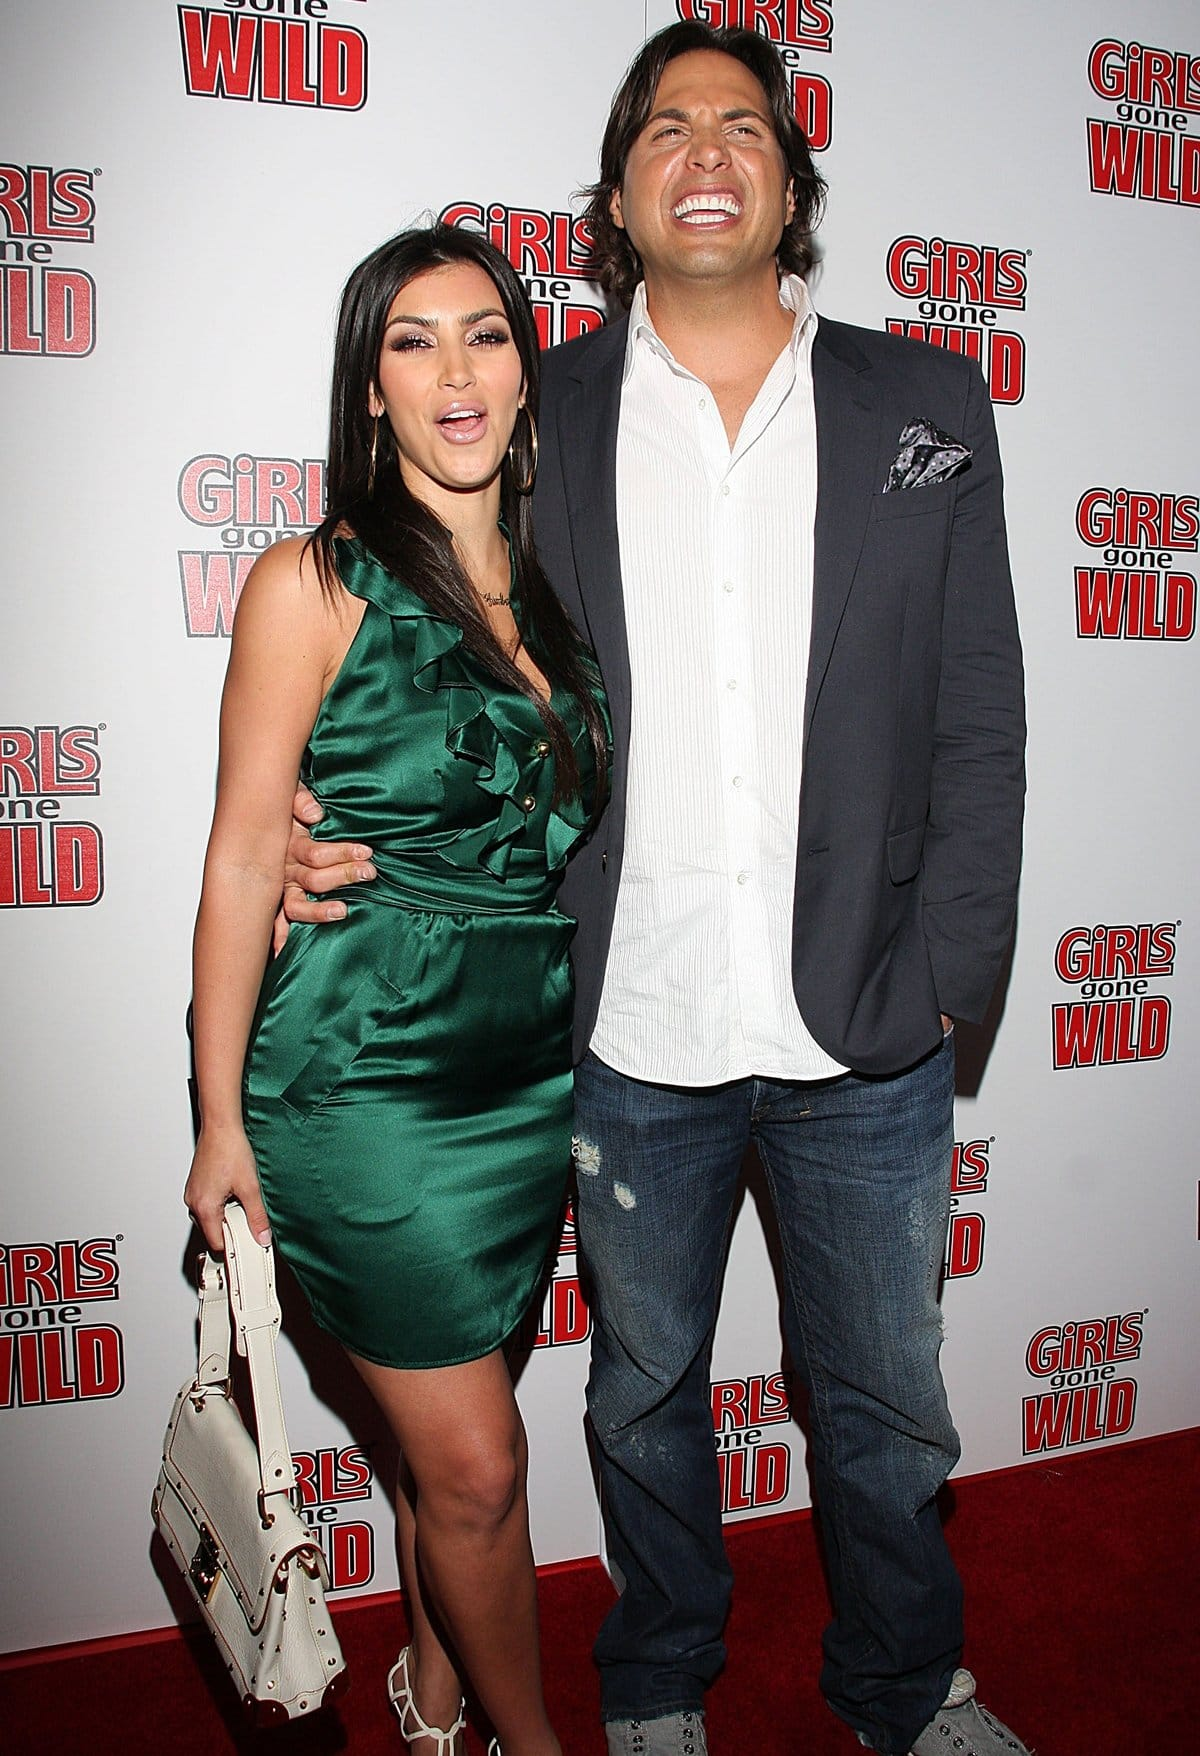 Kim Kardashian and her good friend Joe Francis attend the launch party for Girls Gone Wild Magazine